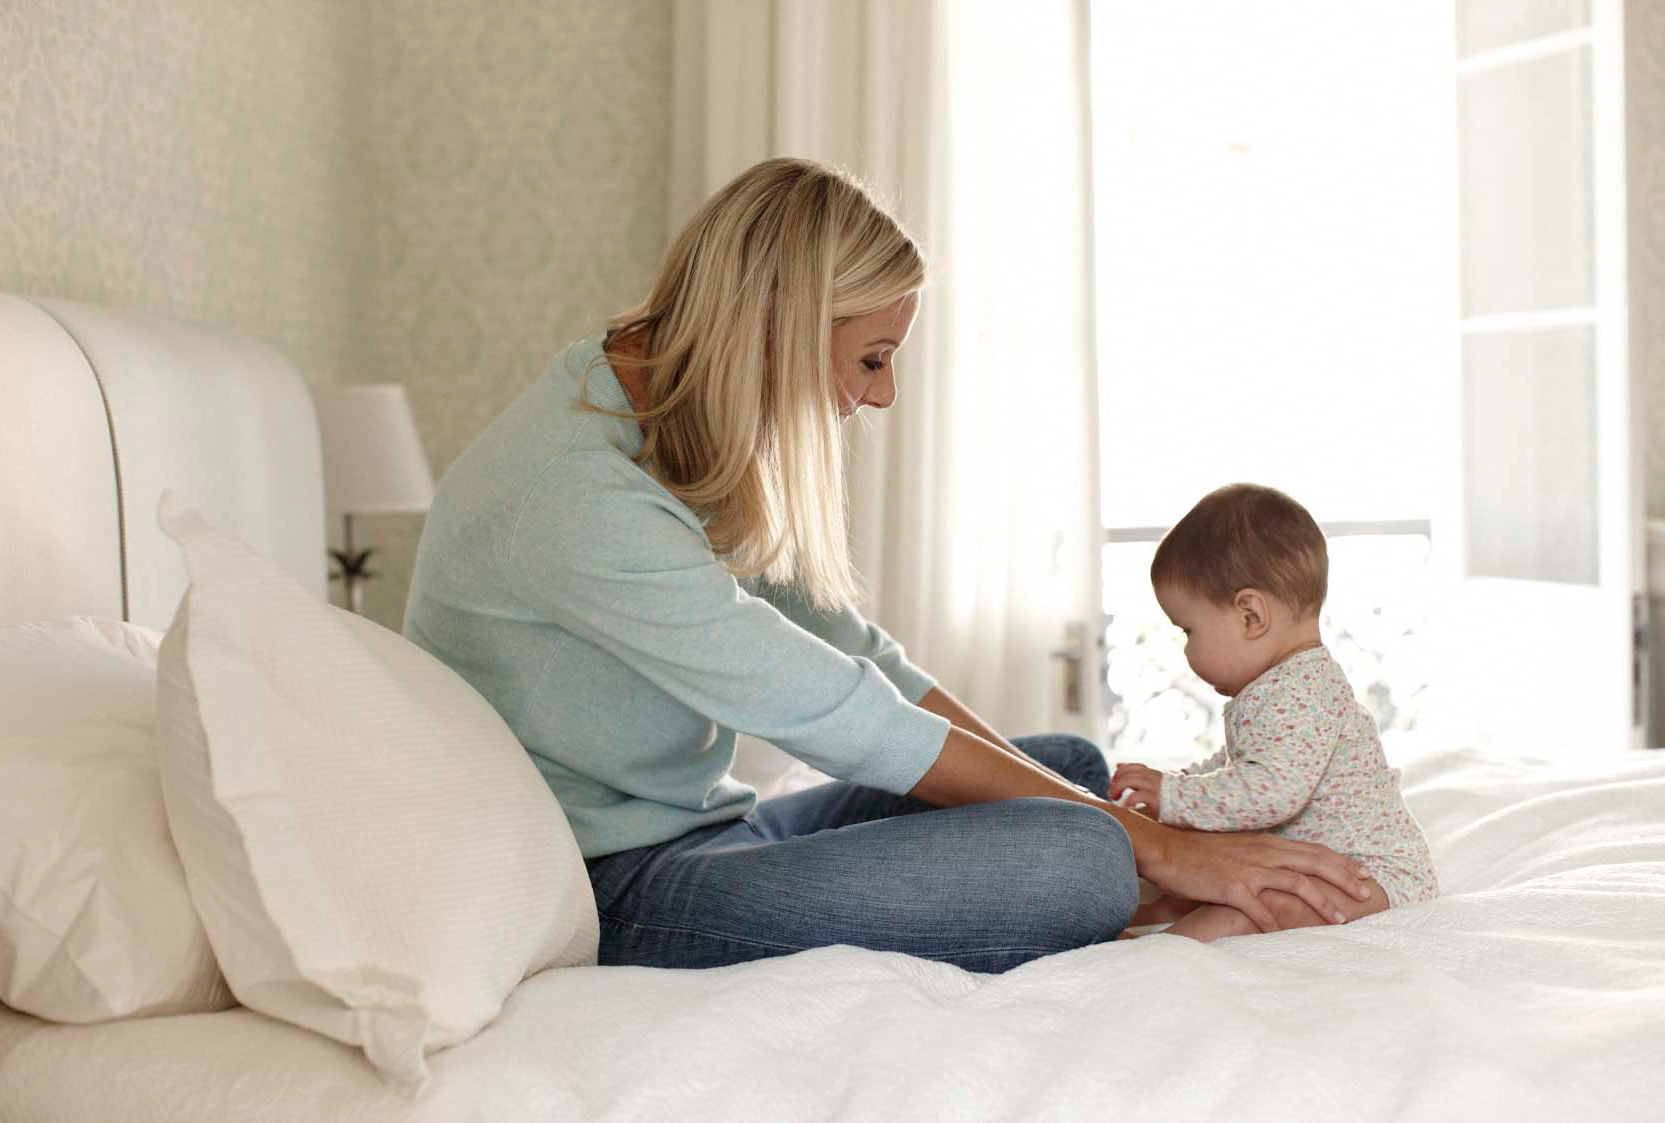 The selfless mum: why it's time that the work she does starts being valued properly